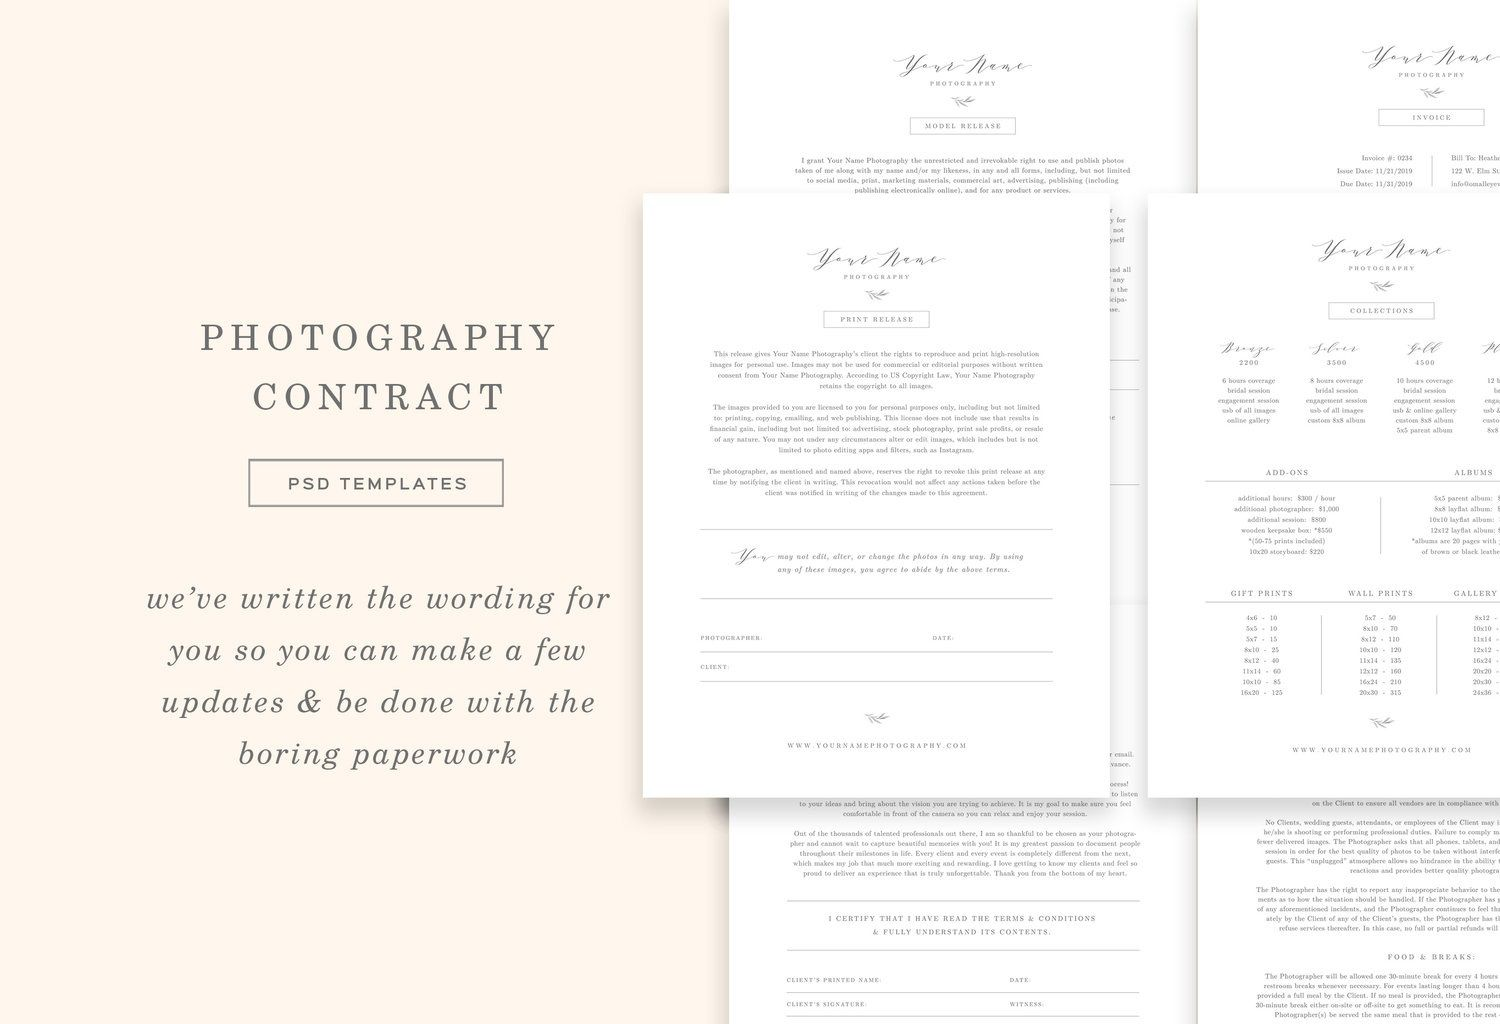 008 Staggering Wedding Photographer Contract Template Free Photo  Simple Photography WordFull